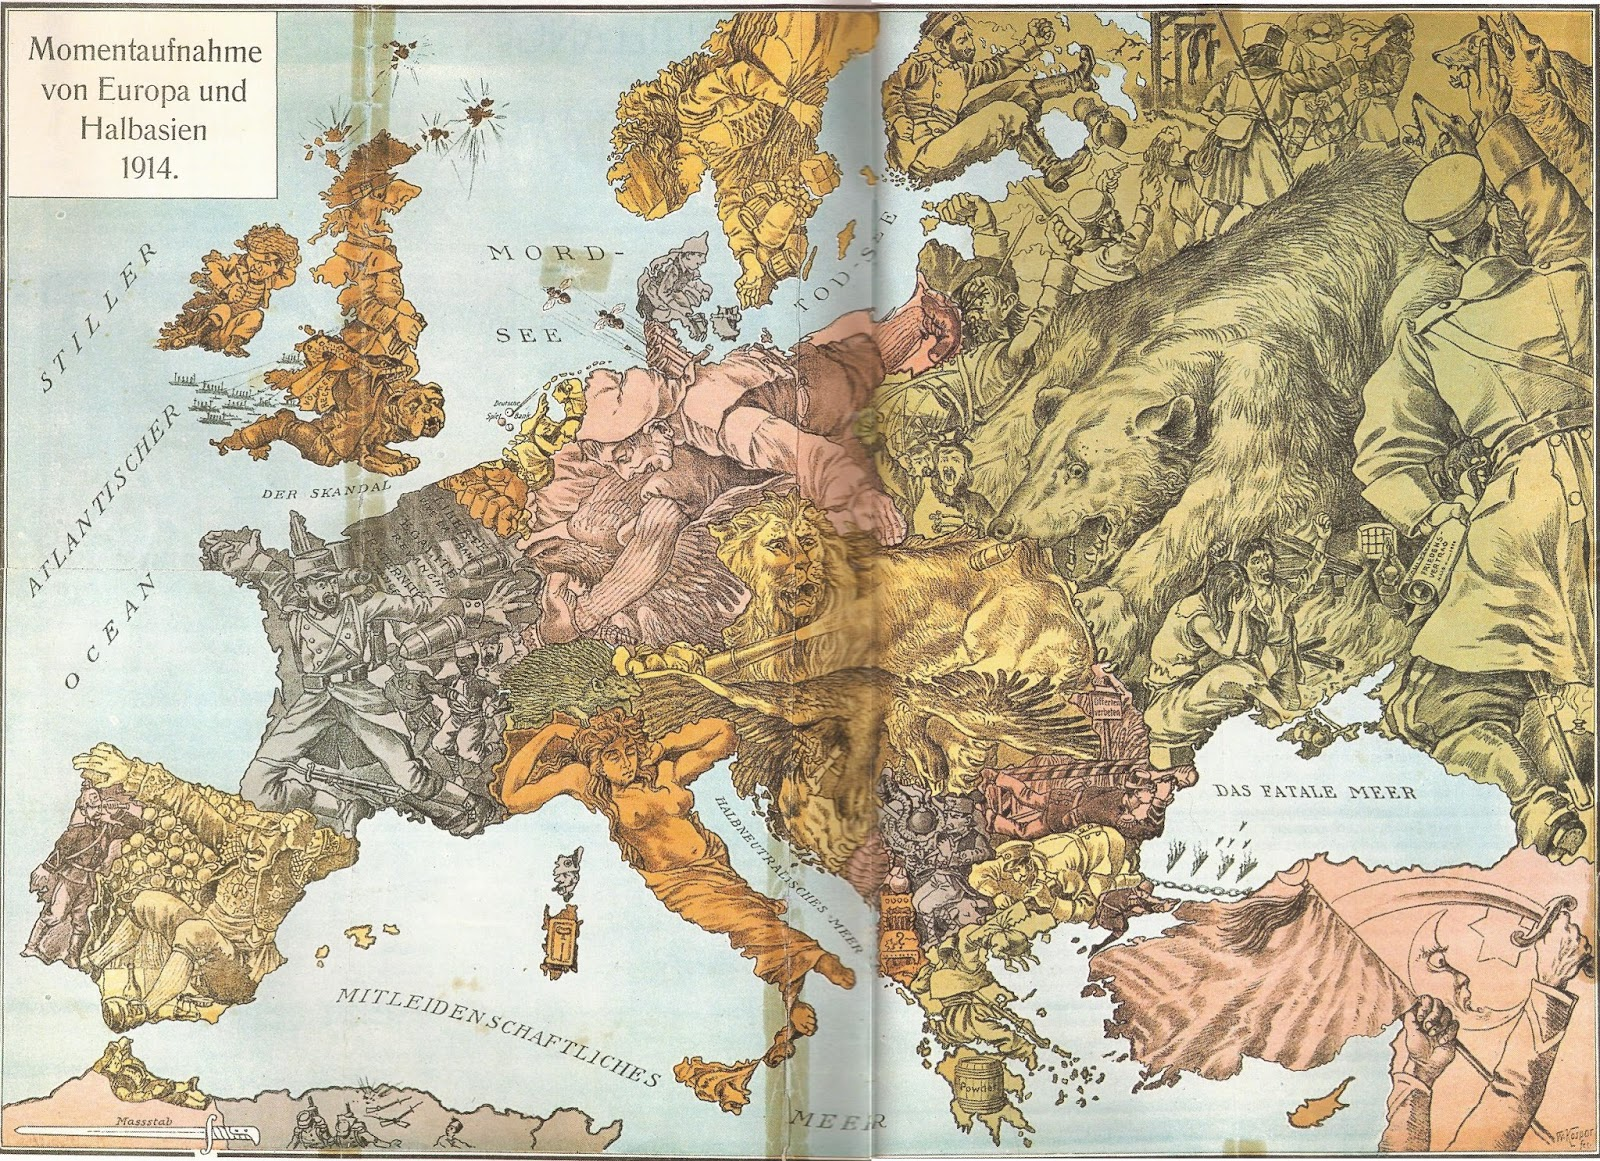 WWI satirical map of Europe